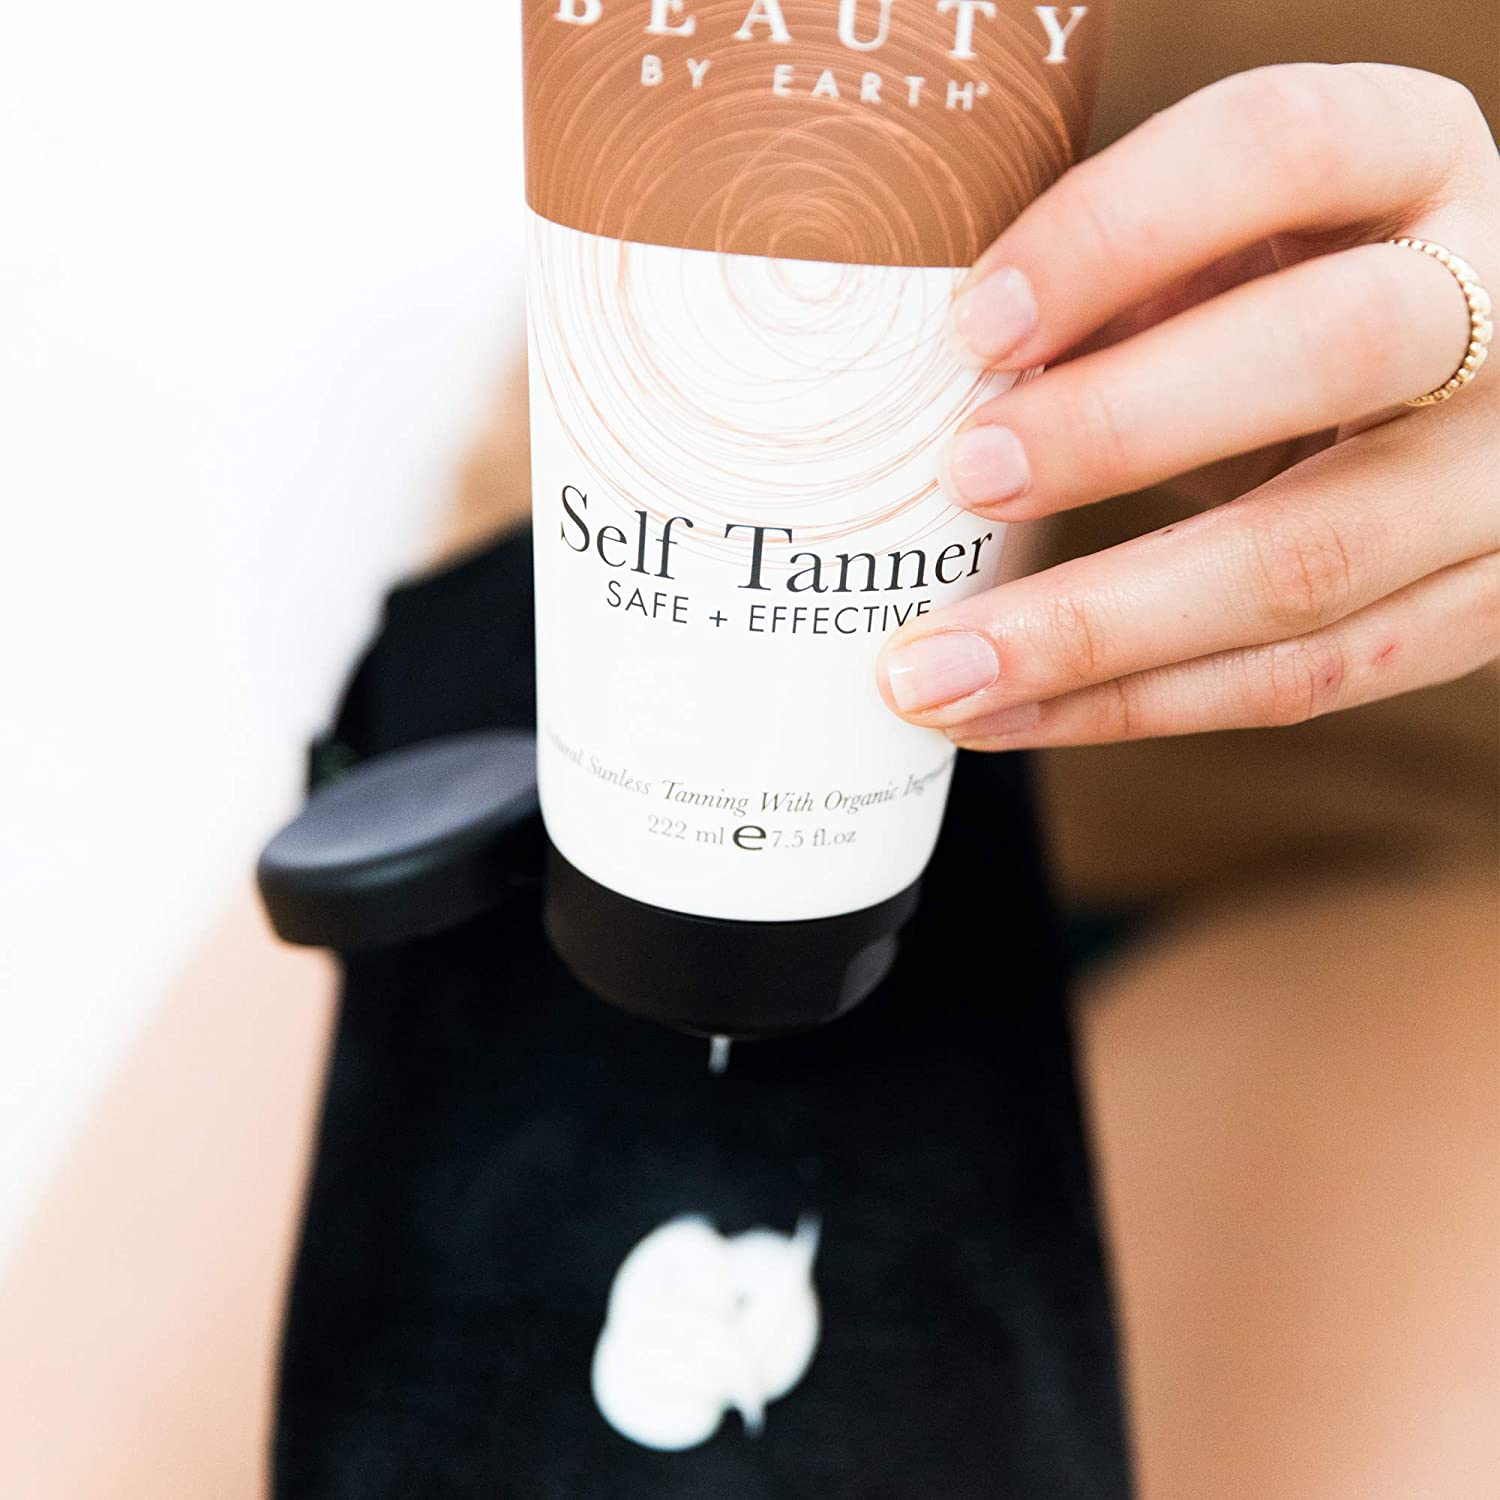 Self-Tanner with Organic Aloe Vera and Shea Butter Tanning Lotion